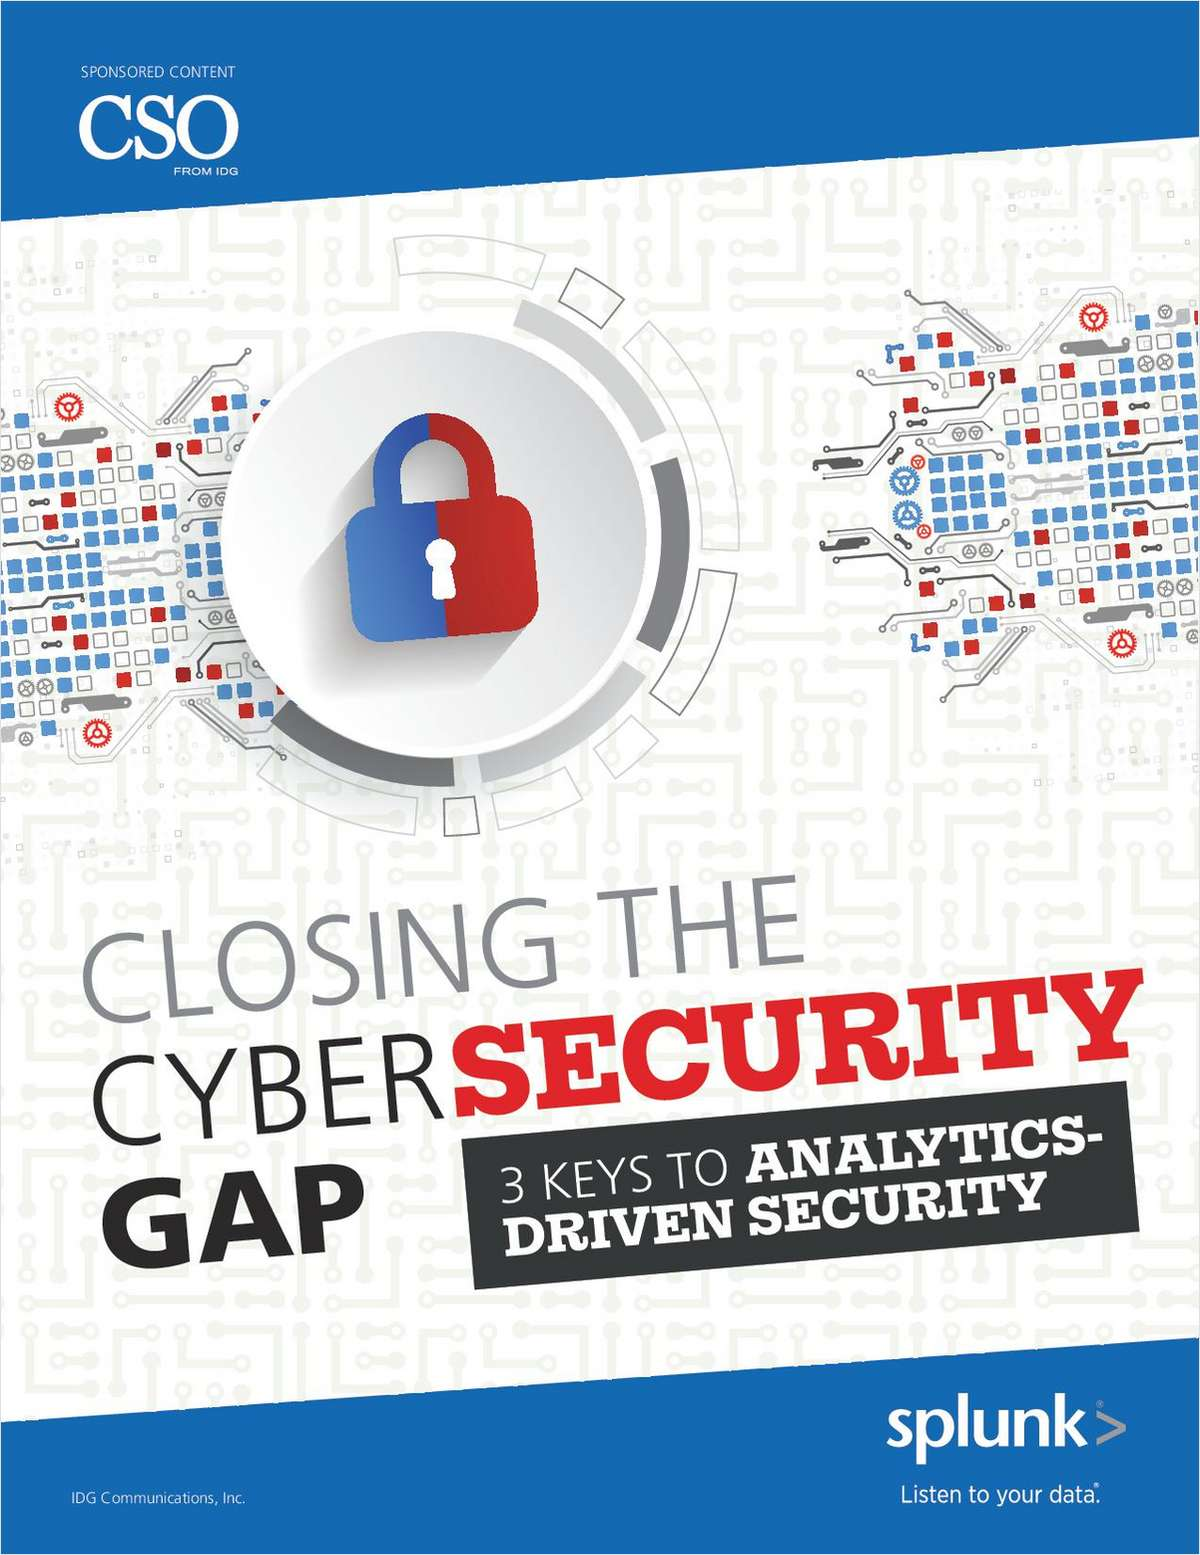 Closing the Cybersecurity Gap: 3 Keys to an Analytics-Driven Security